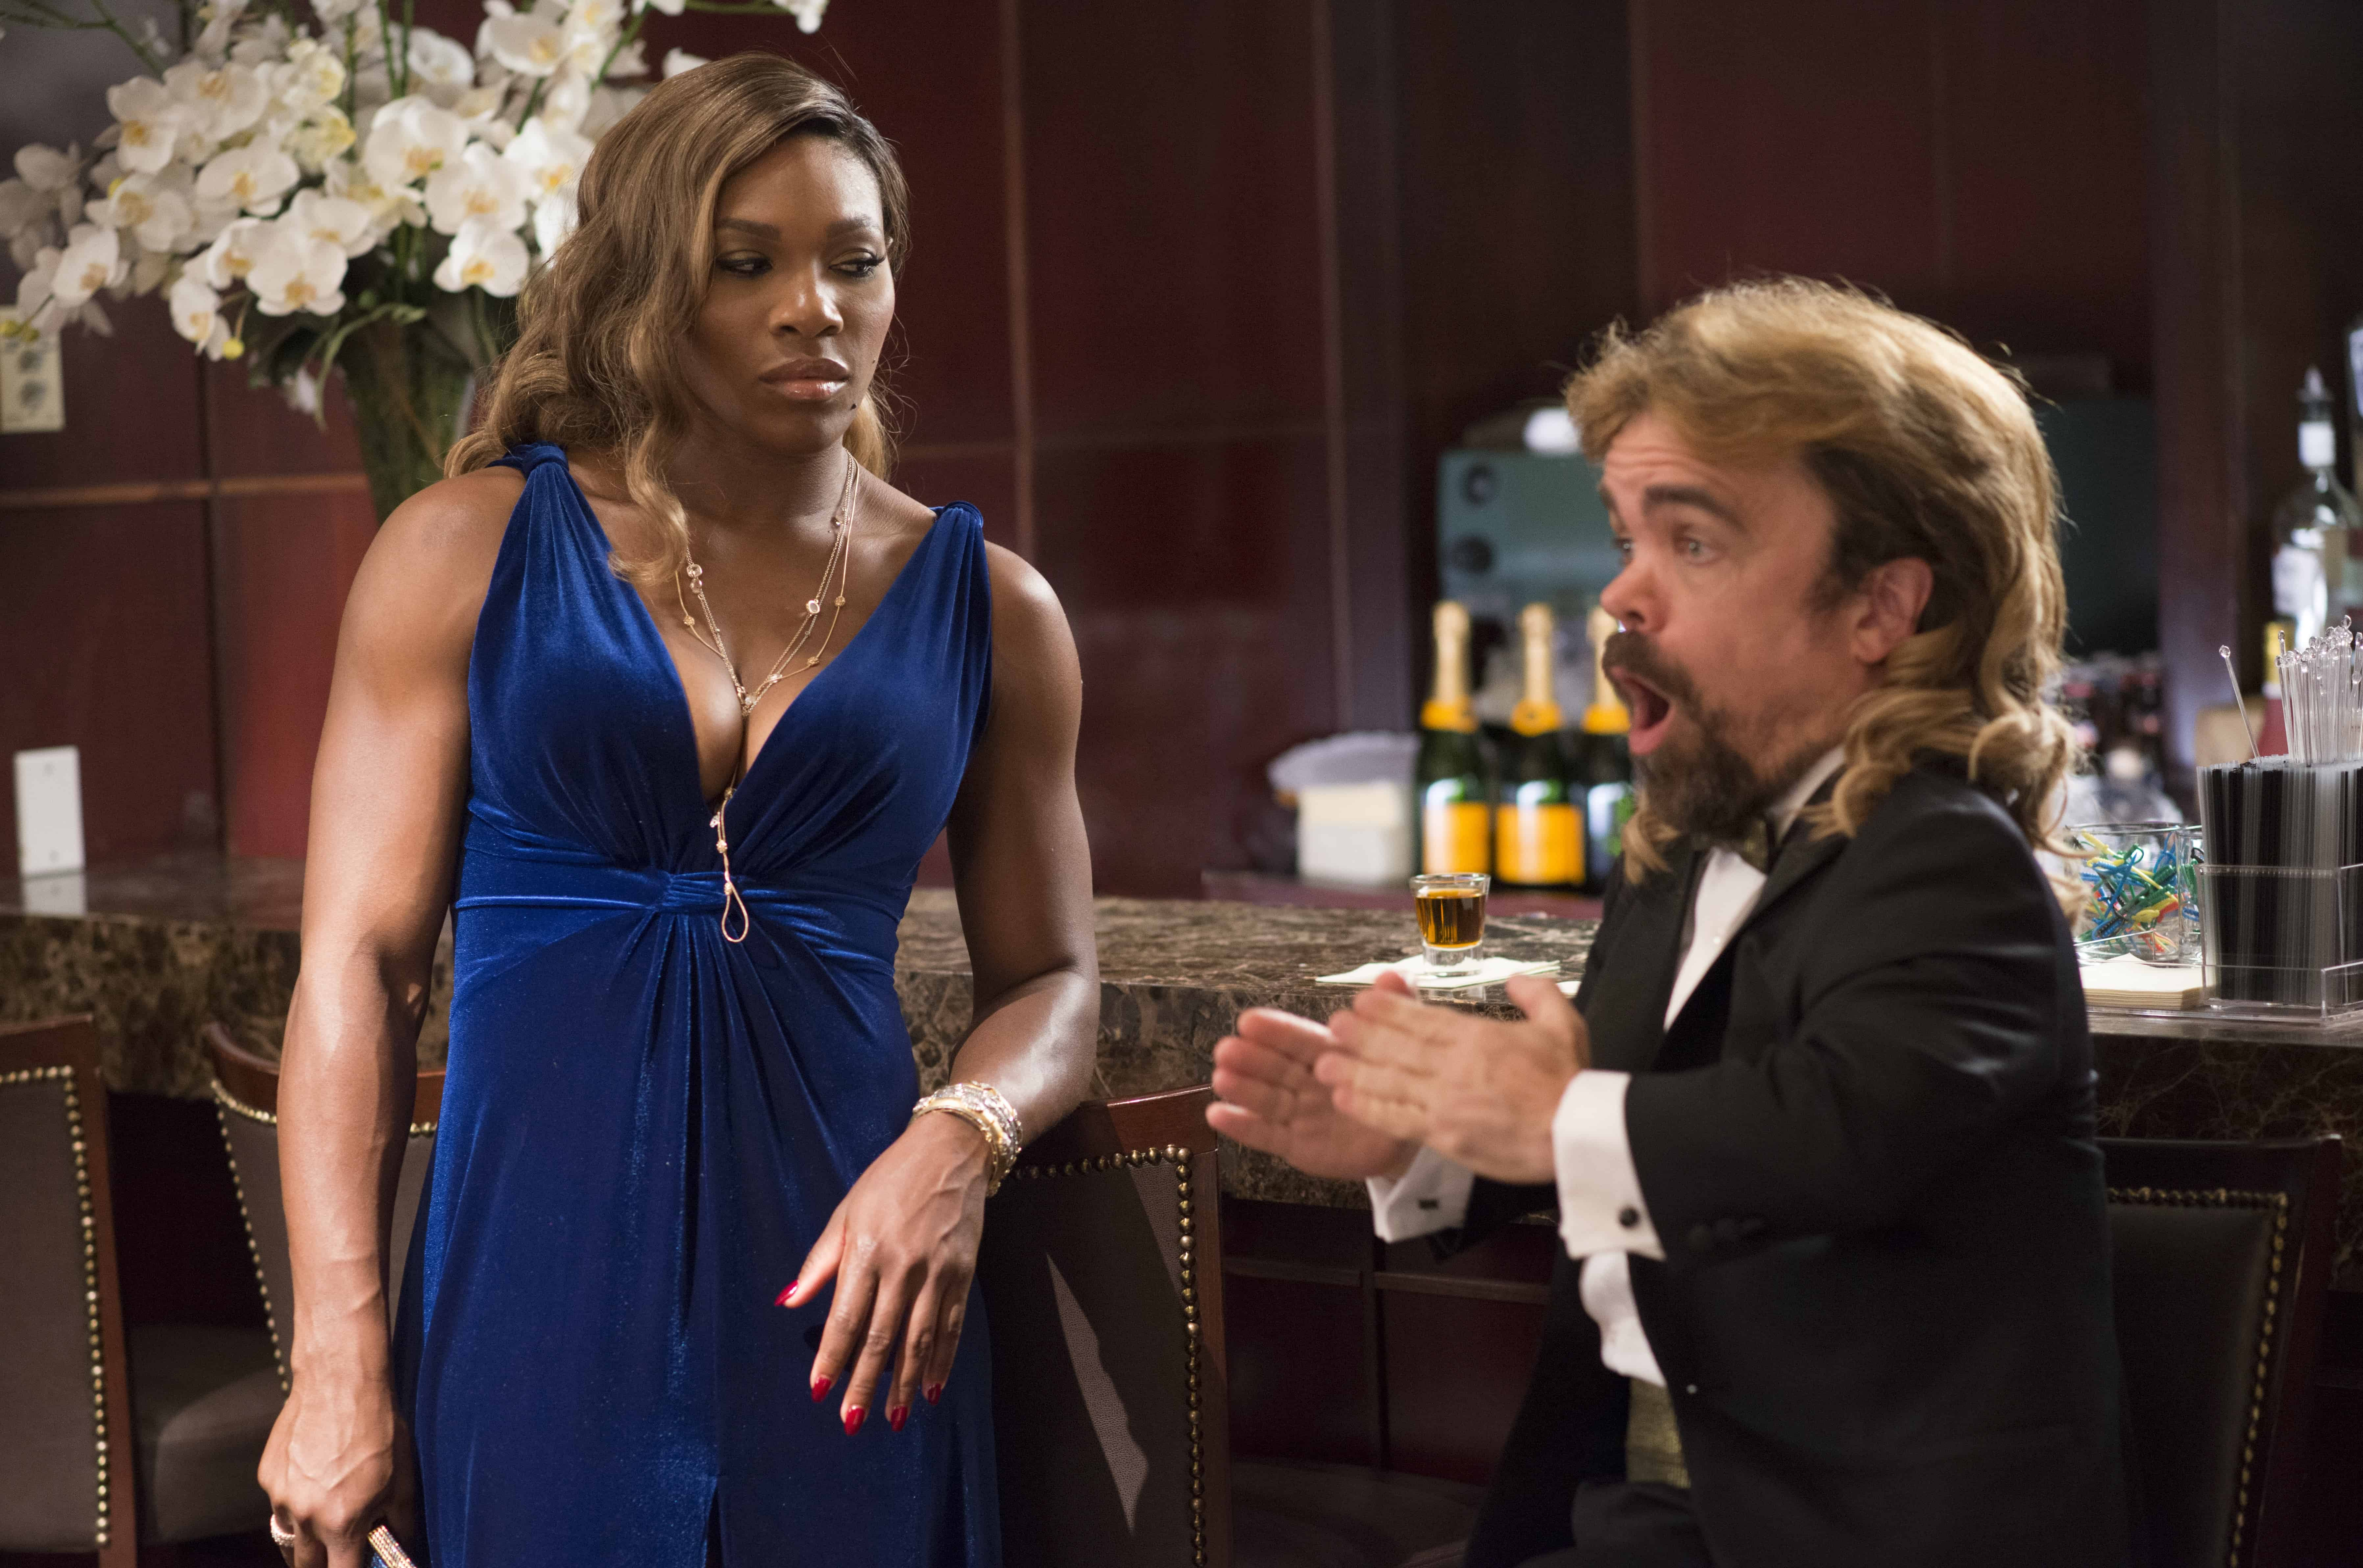 Serena Williams (s herself) on a date with Eddie (Peter Dinklage) in Columbia Pictures' PIXELS.